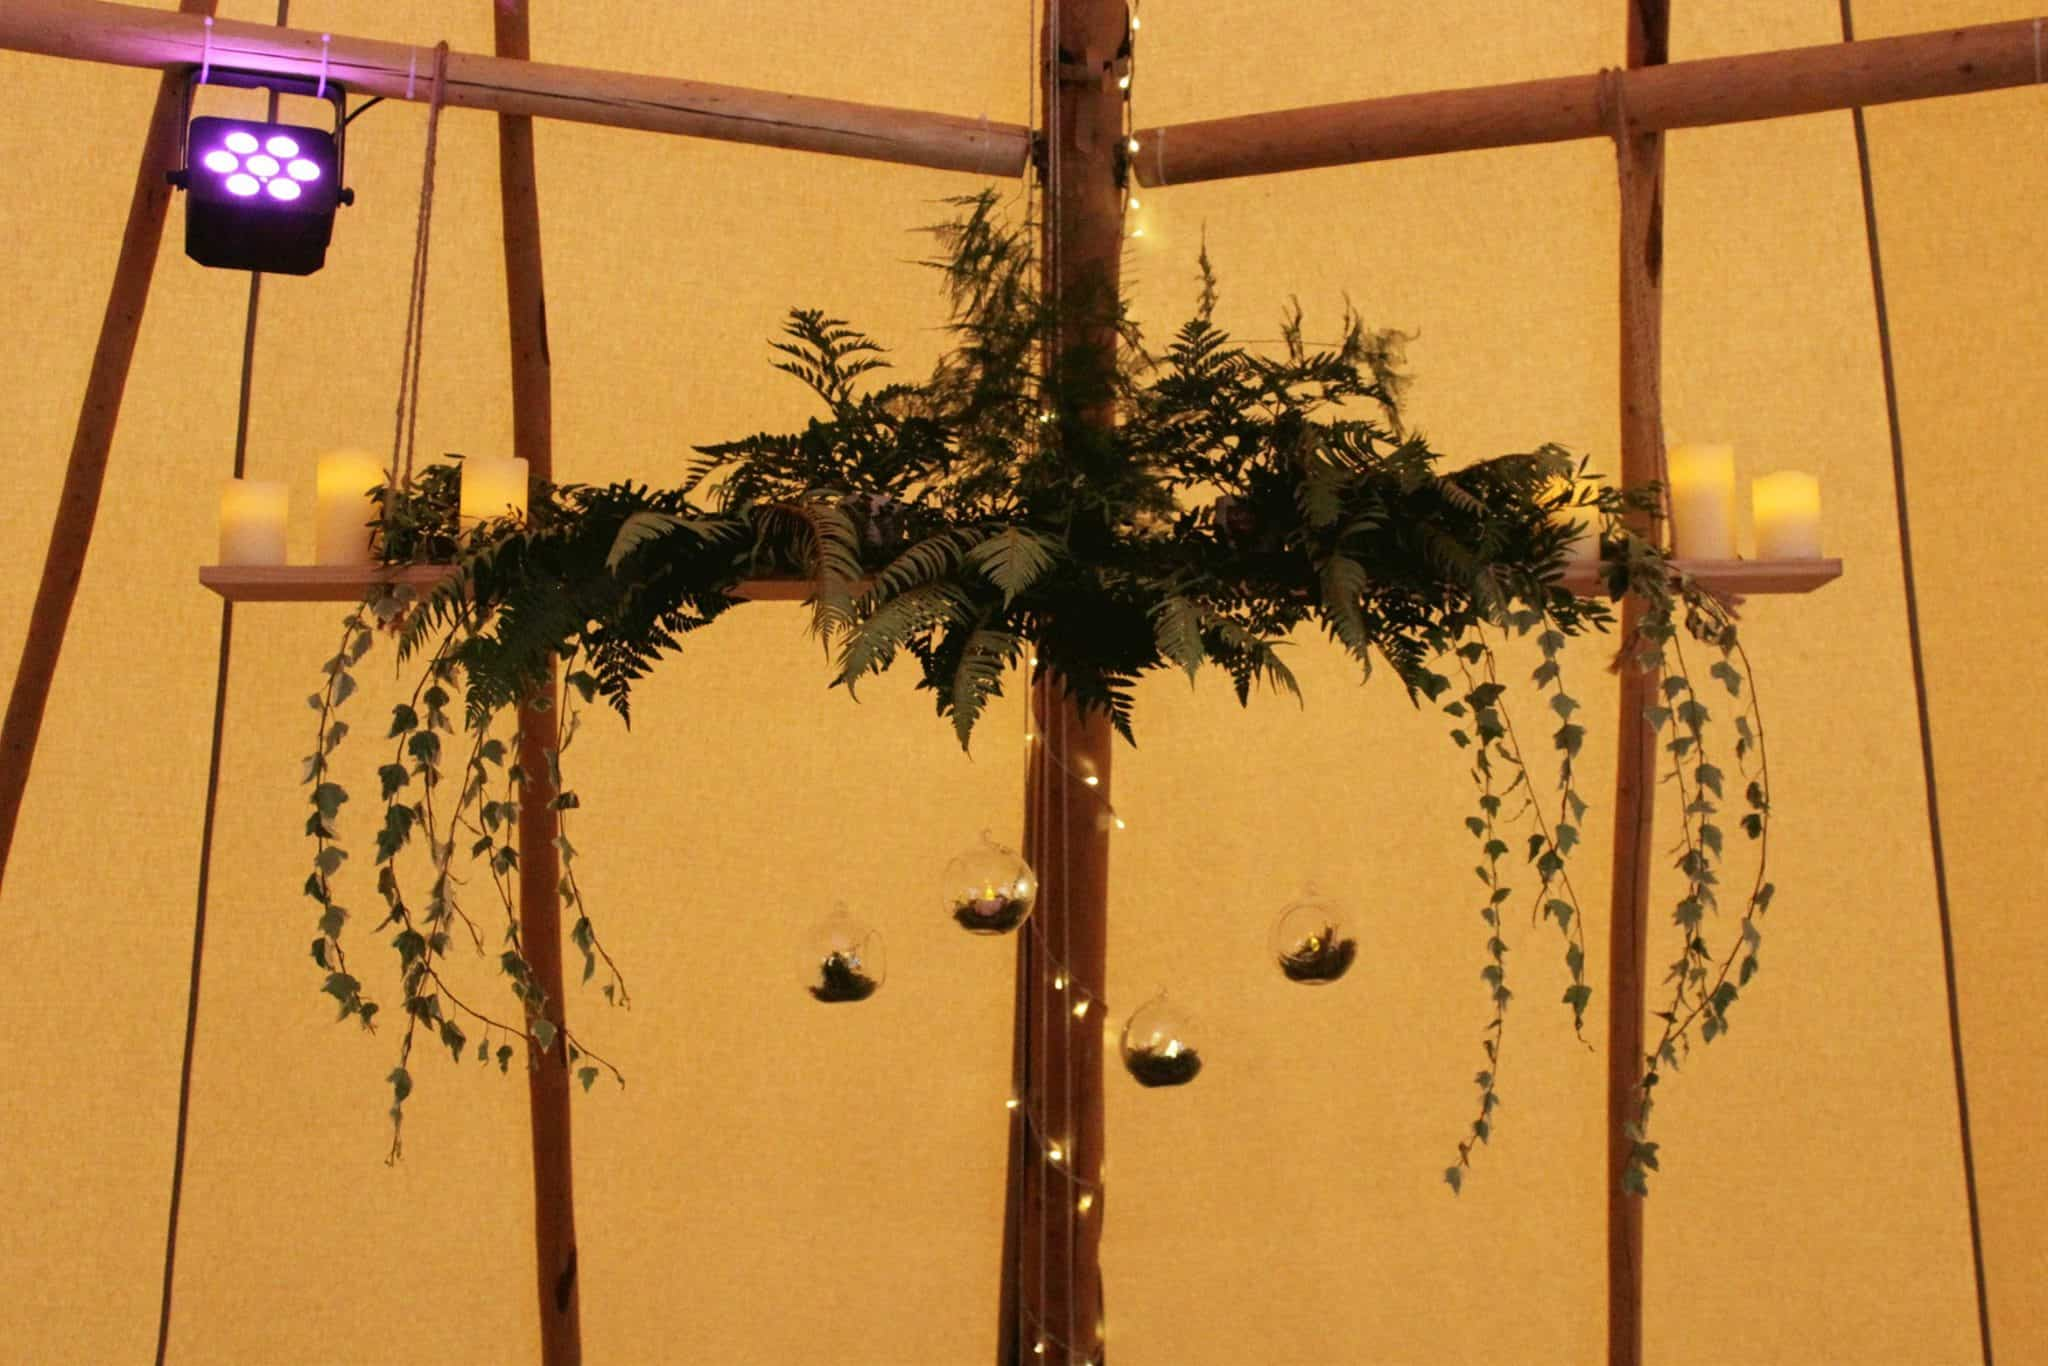 Hanging Shelf - Woodland themed styling by The Rustic Wedding Company